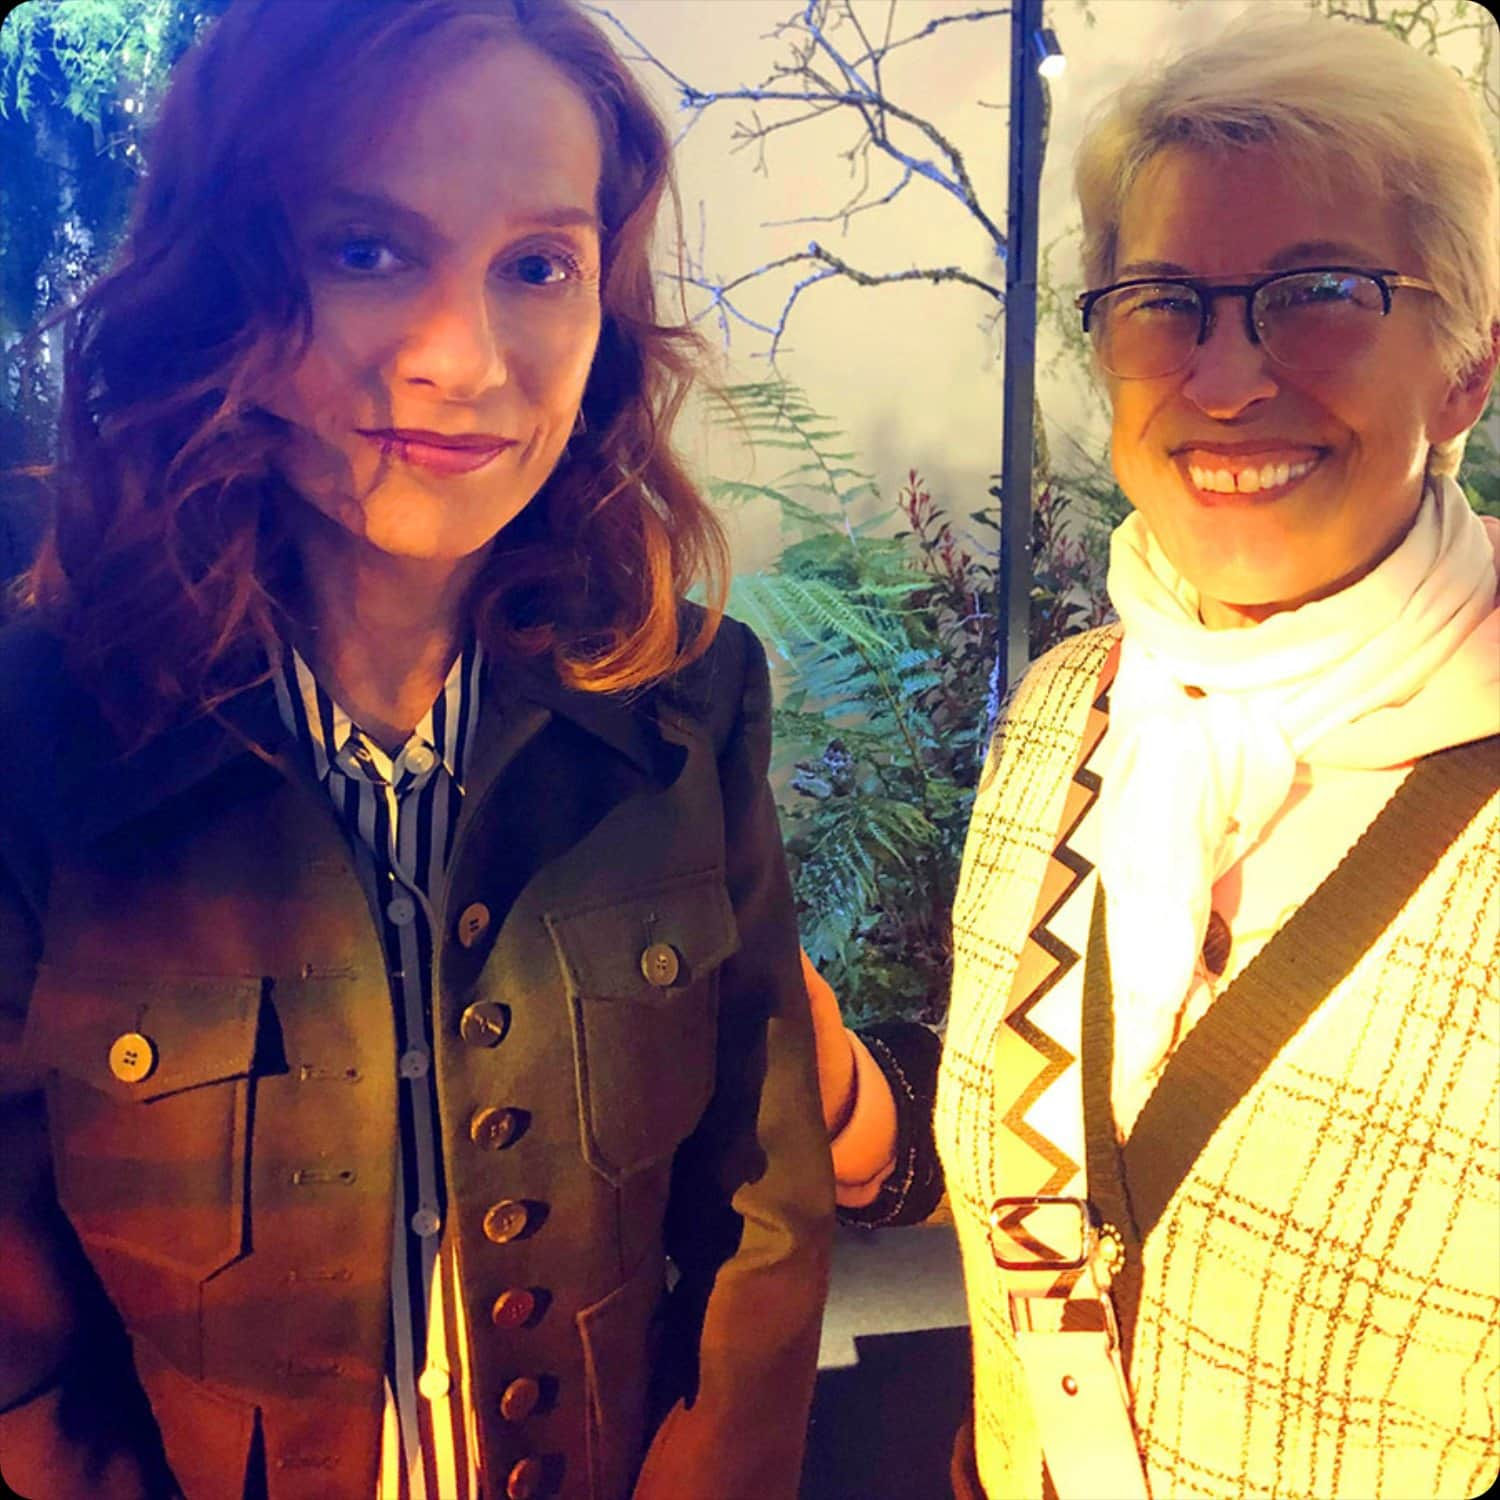 Isabelle Huppert and Guillaumette Duplaix (RUNWAY MAGAZINE Editor) at Delvaux Fall-Winter 2020-2021 Paris Fashion Week